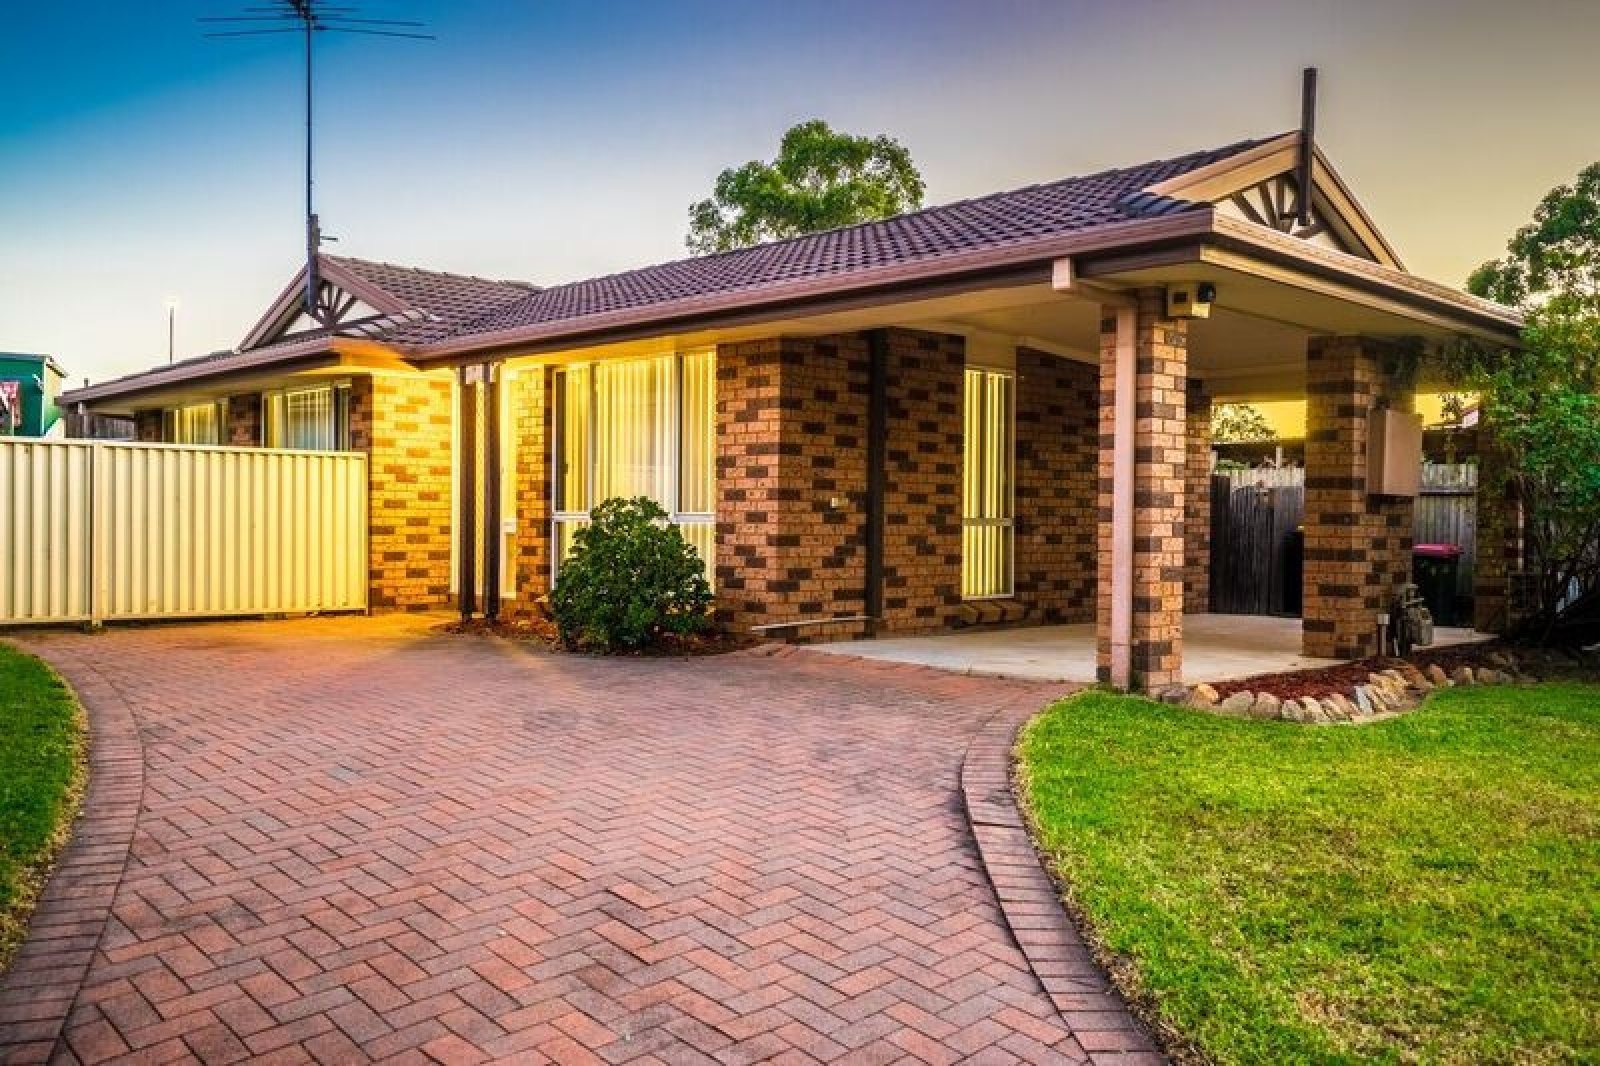 12 Baldwin Way,Currans Hill,NSW,3 Bedrooms Bedrooms,1 BathroomBathrooms,House,Baldwin Way,1450